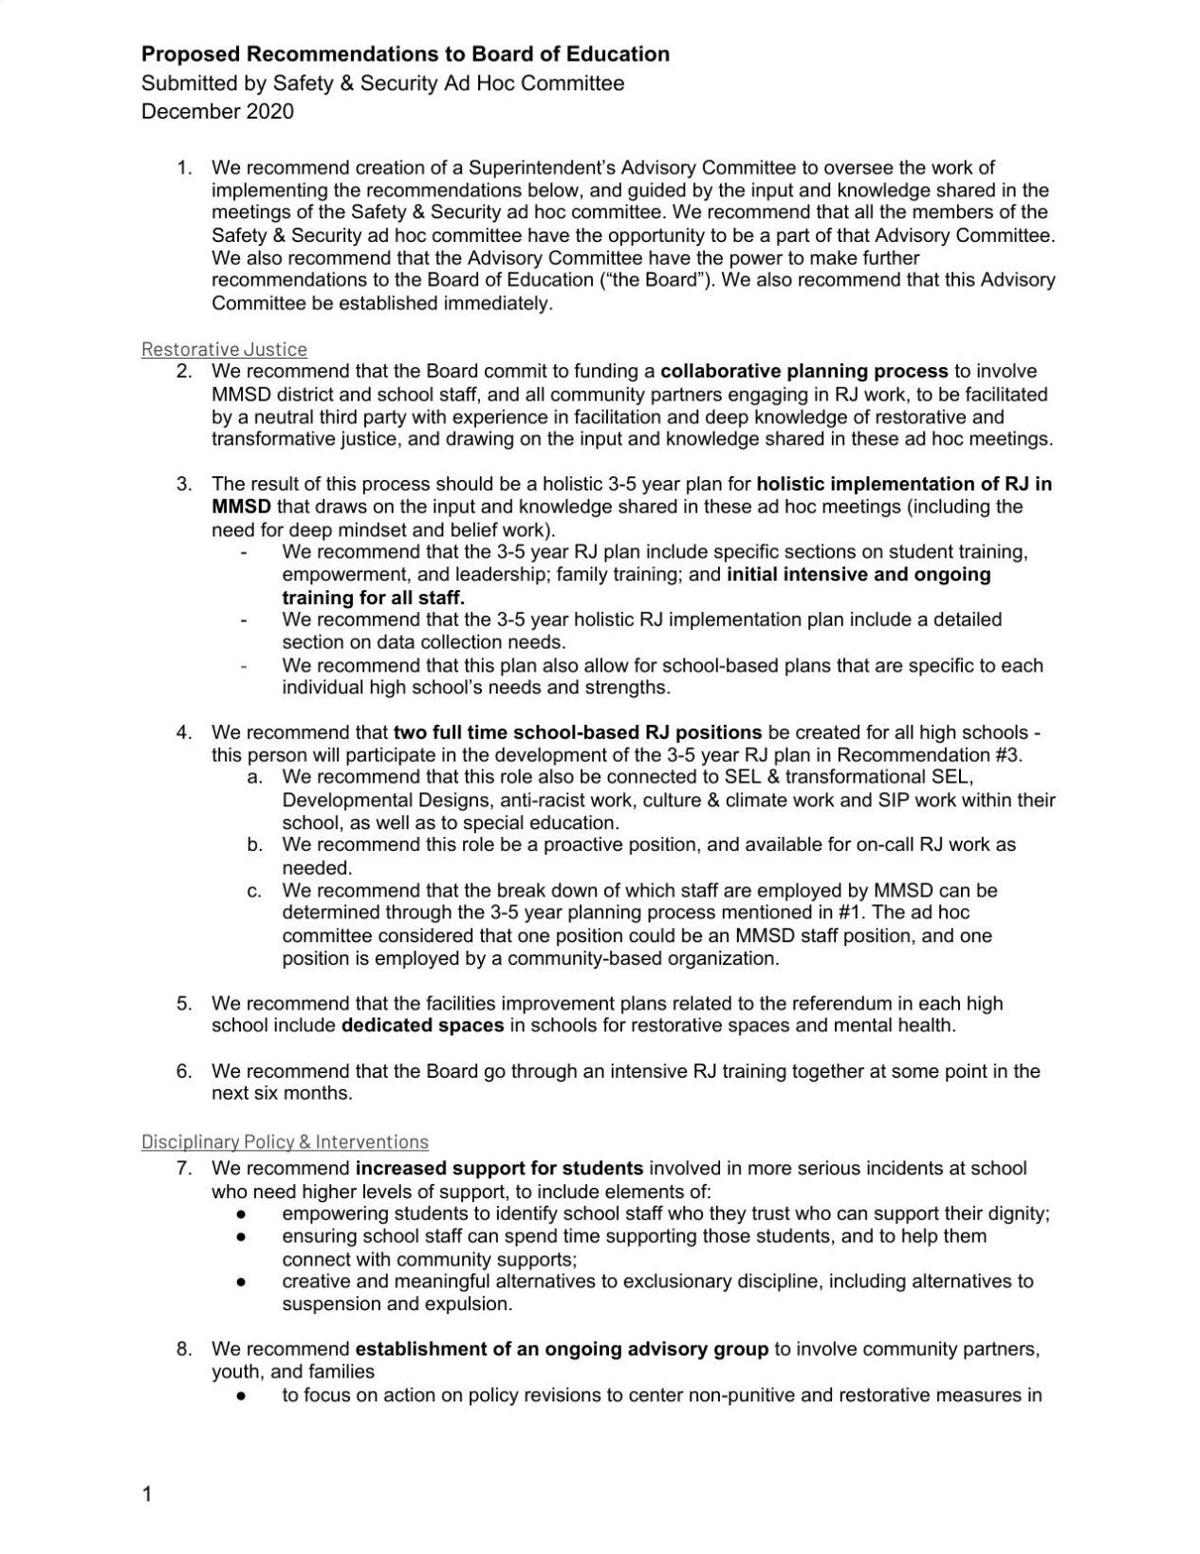 Safety and Security Ad Hoc Recommendations